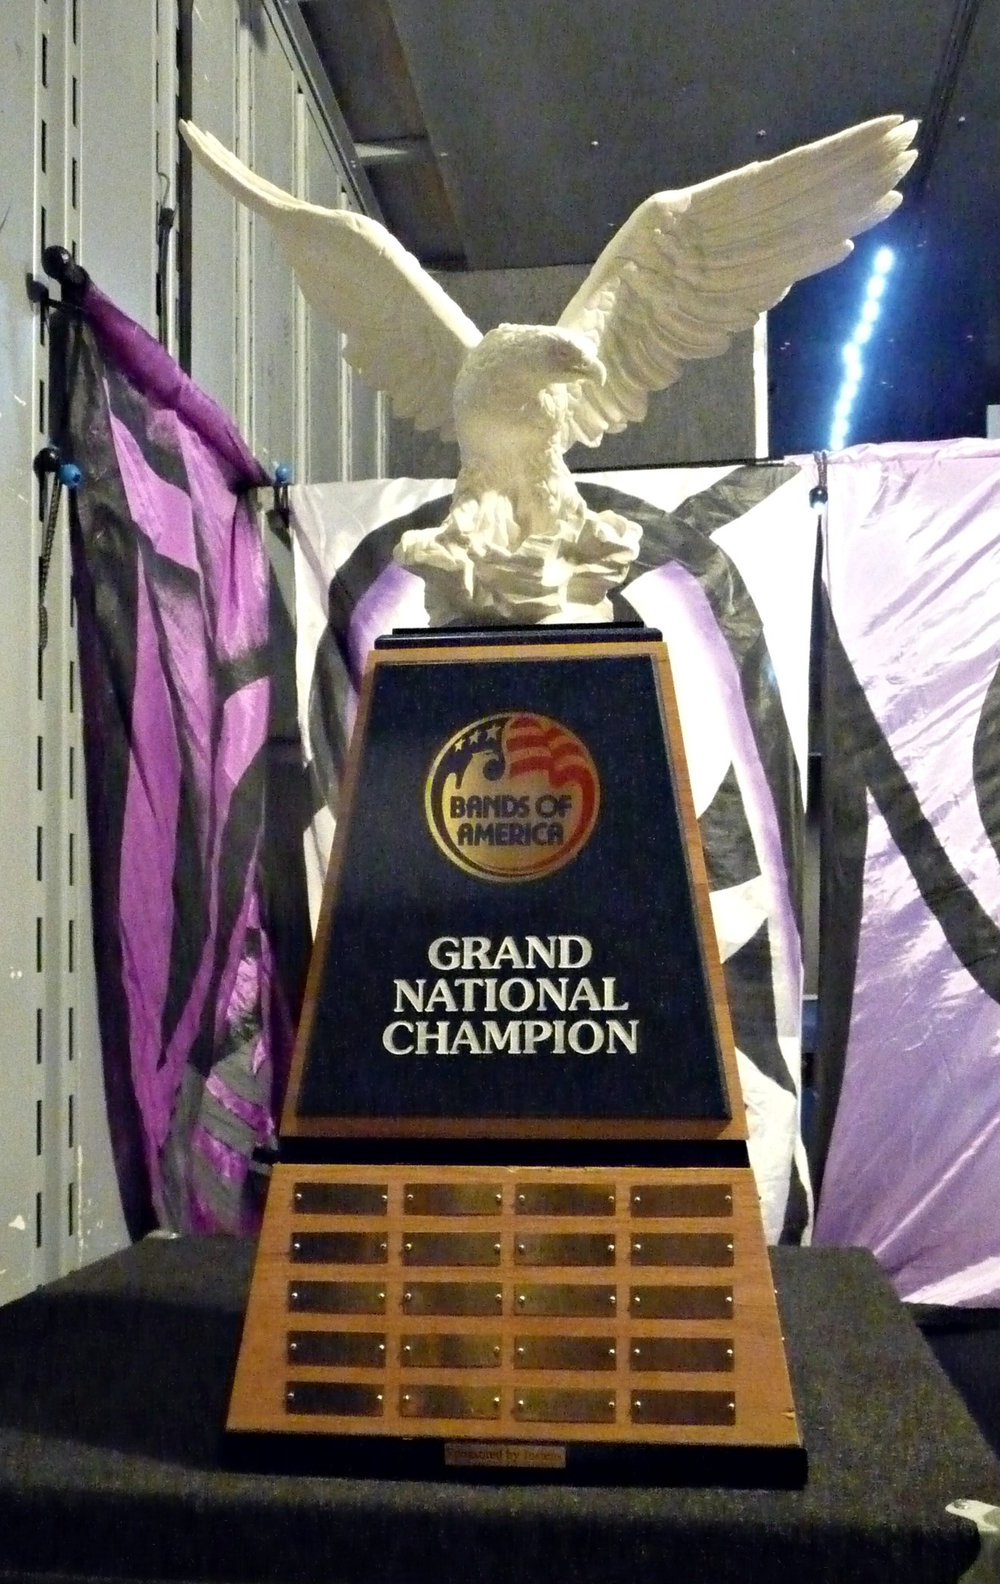 """The Eagle"" - The coveted Bands of America Grand National Champion's traveling trophy, won by Broken Arrow HS (OK) in 2015"